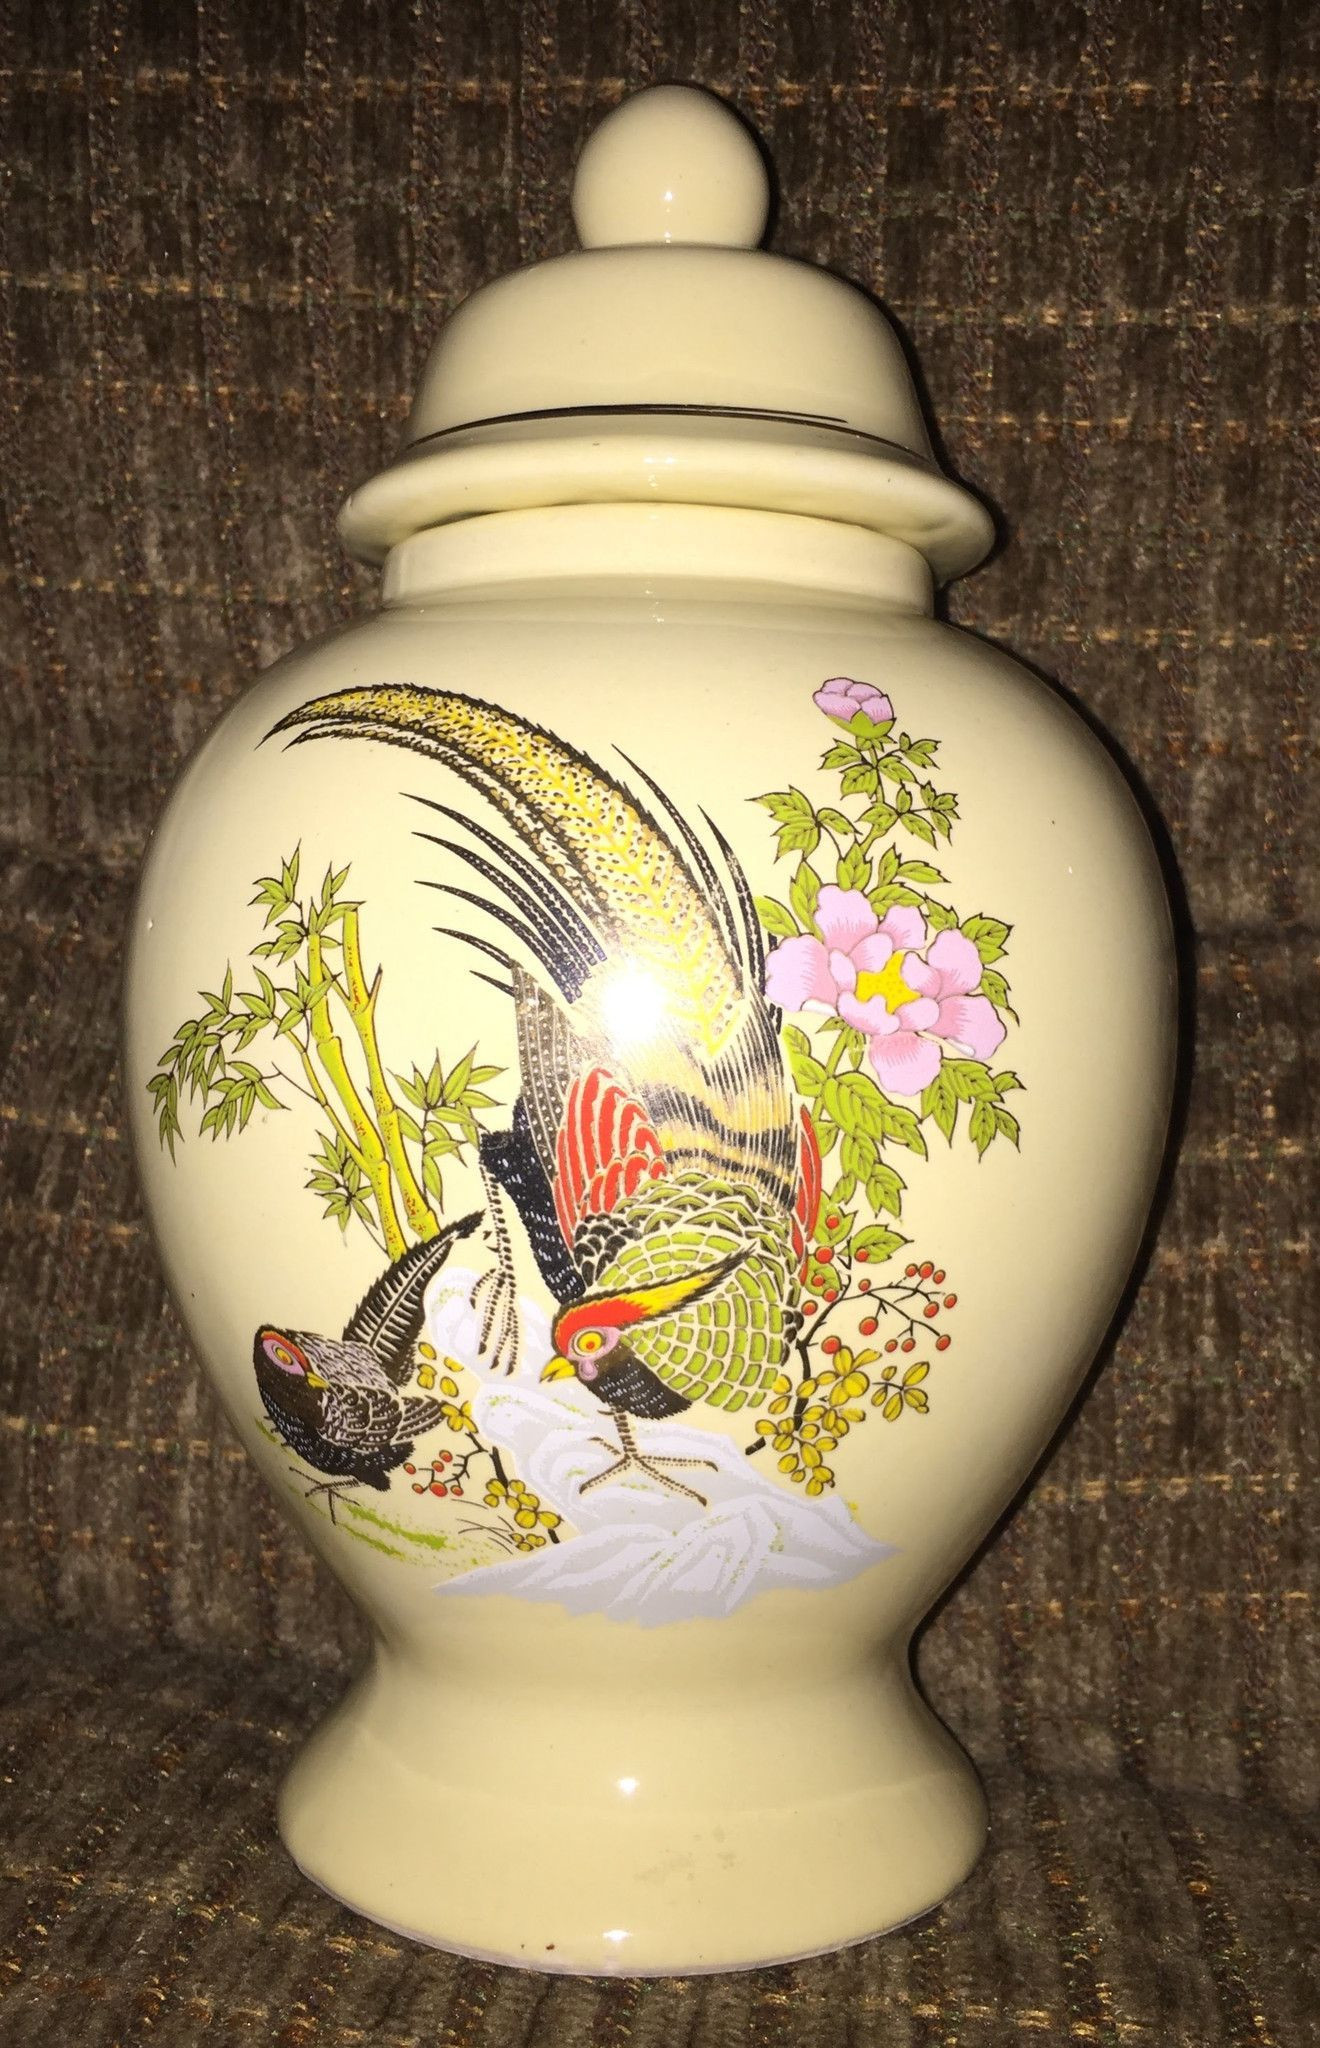 bird vase white of vintage asian vase jar hand painted pinterest asian vases and for vintage collectible asian vase jar hand painted two birds bamboo and flowers